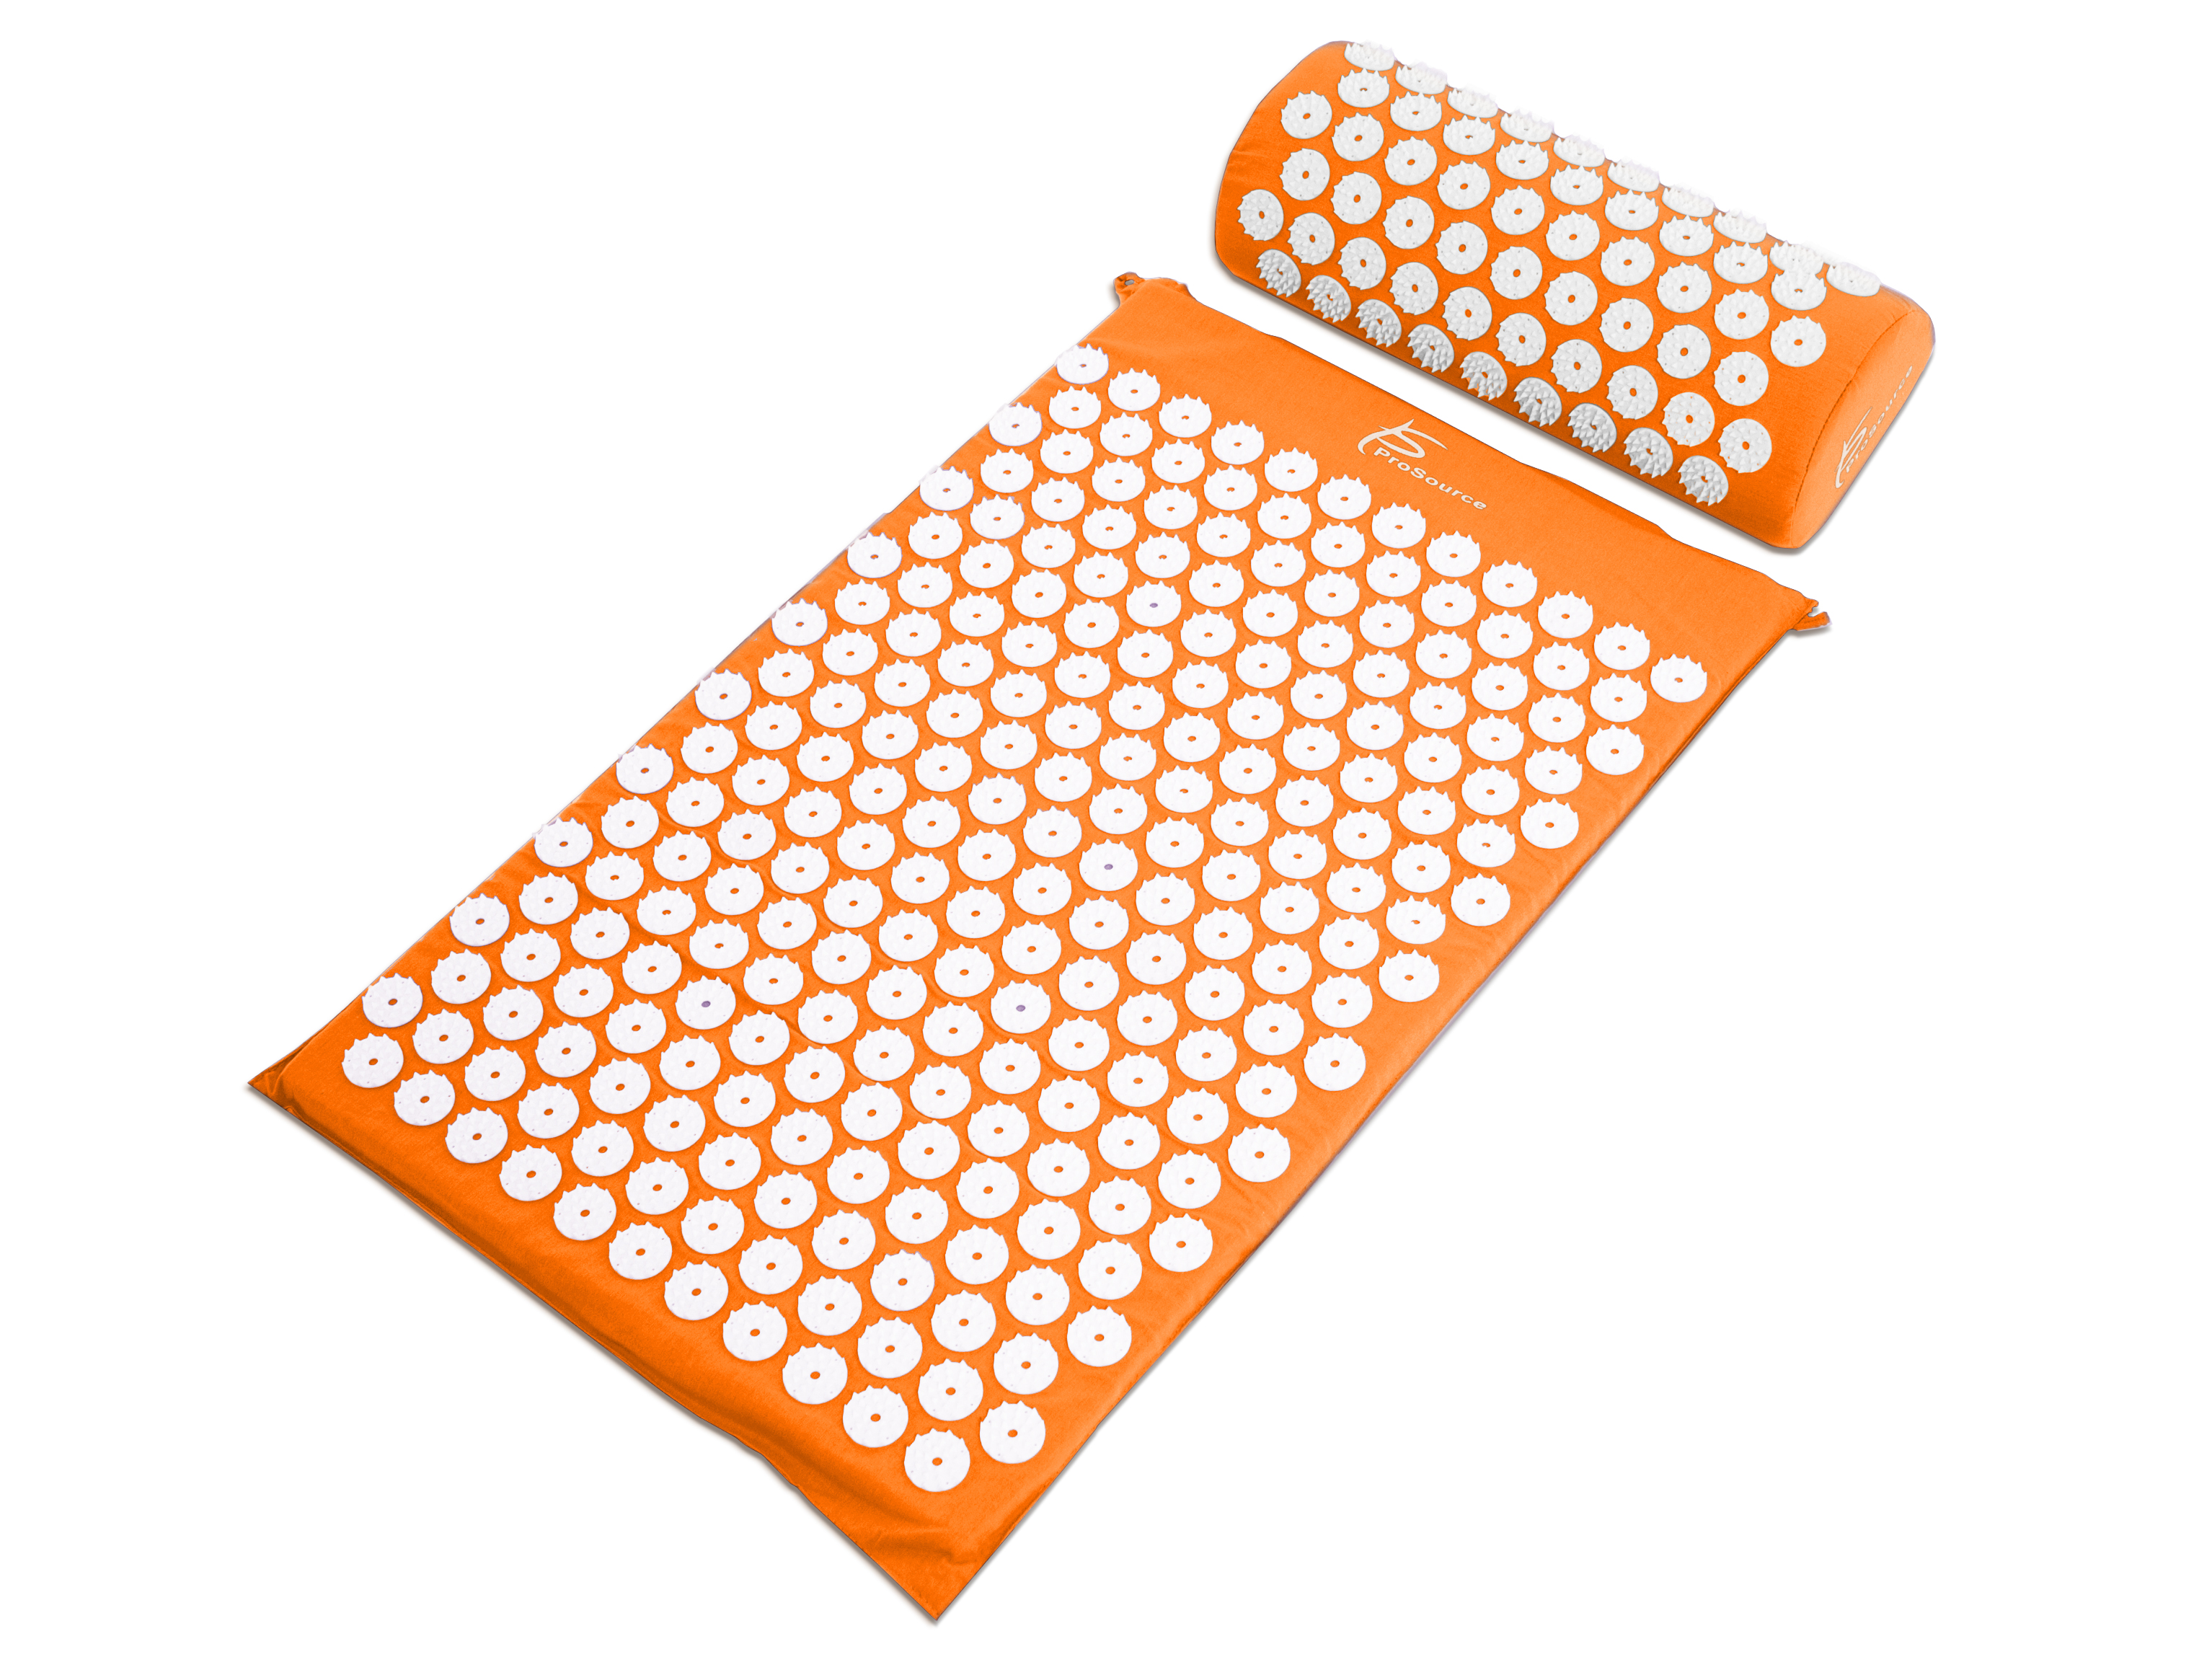 ProSource Acupressure Mat Pillow Back Neck Pain Relief Muscle Relaxation Orange